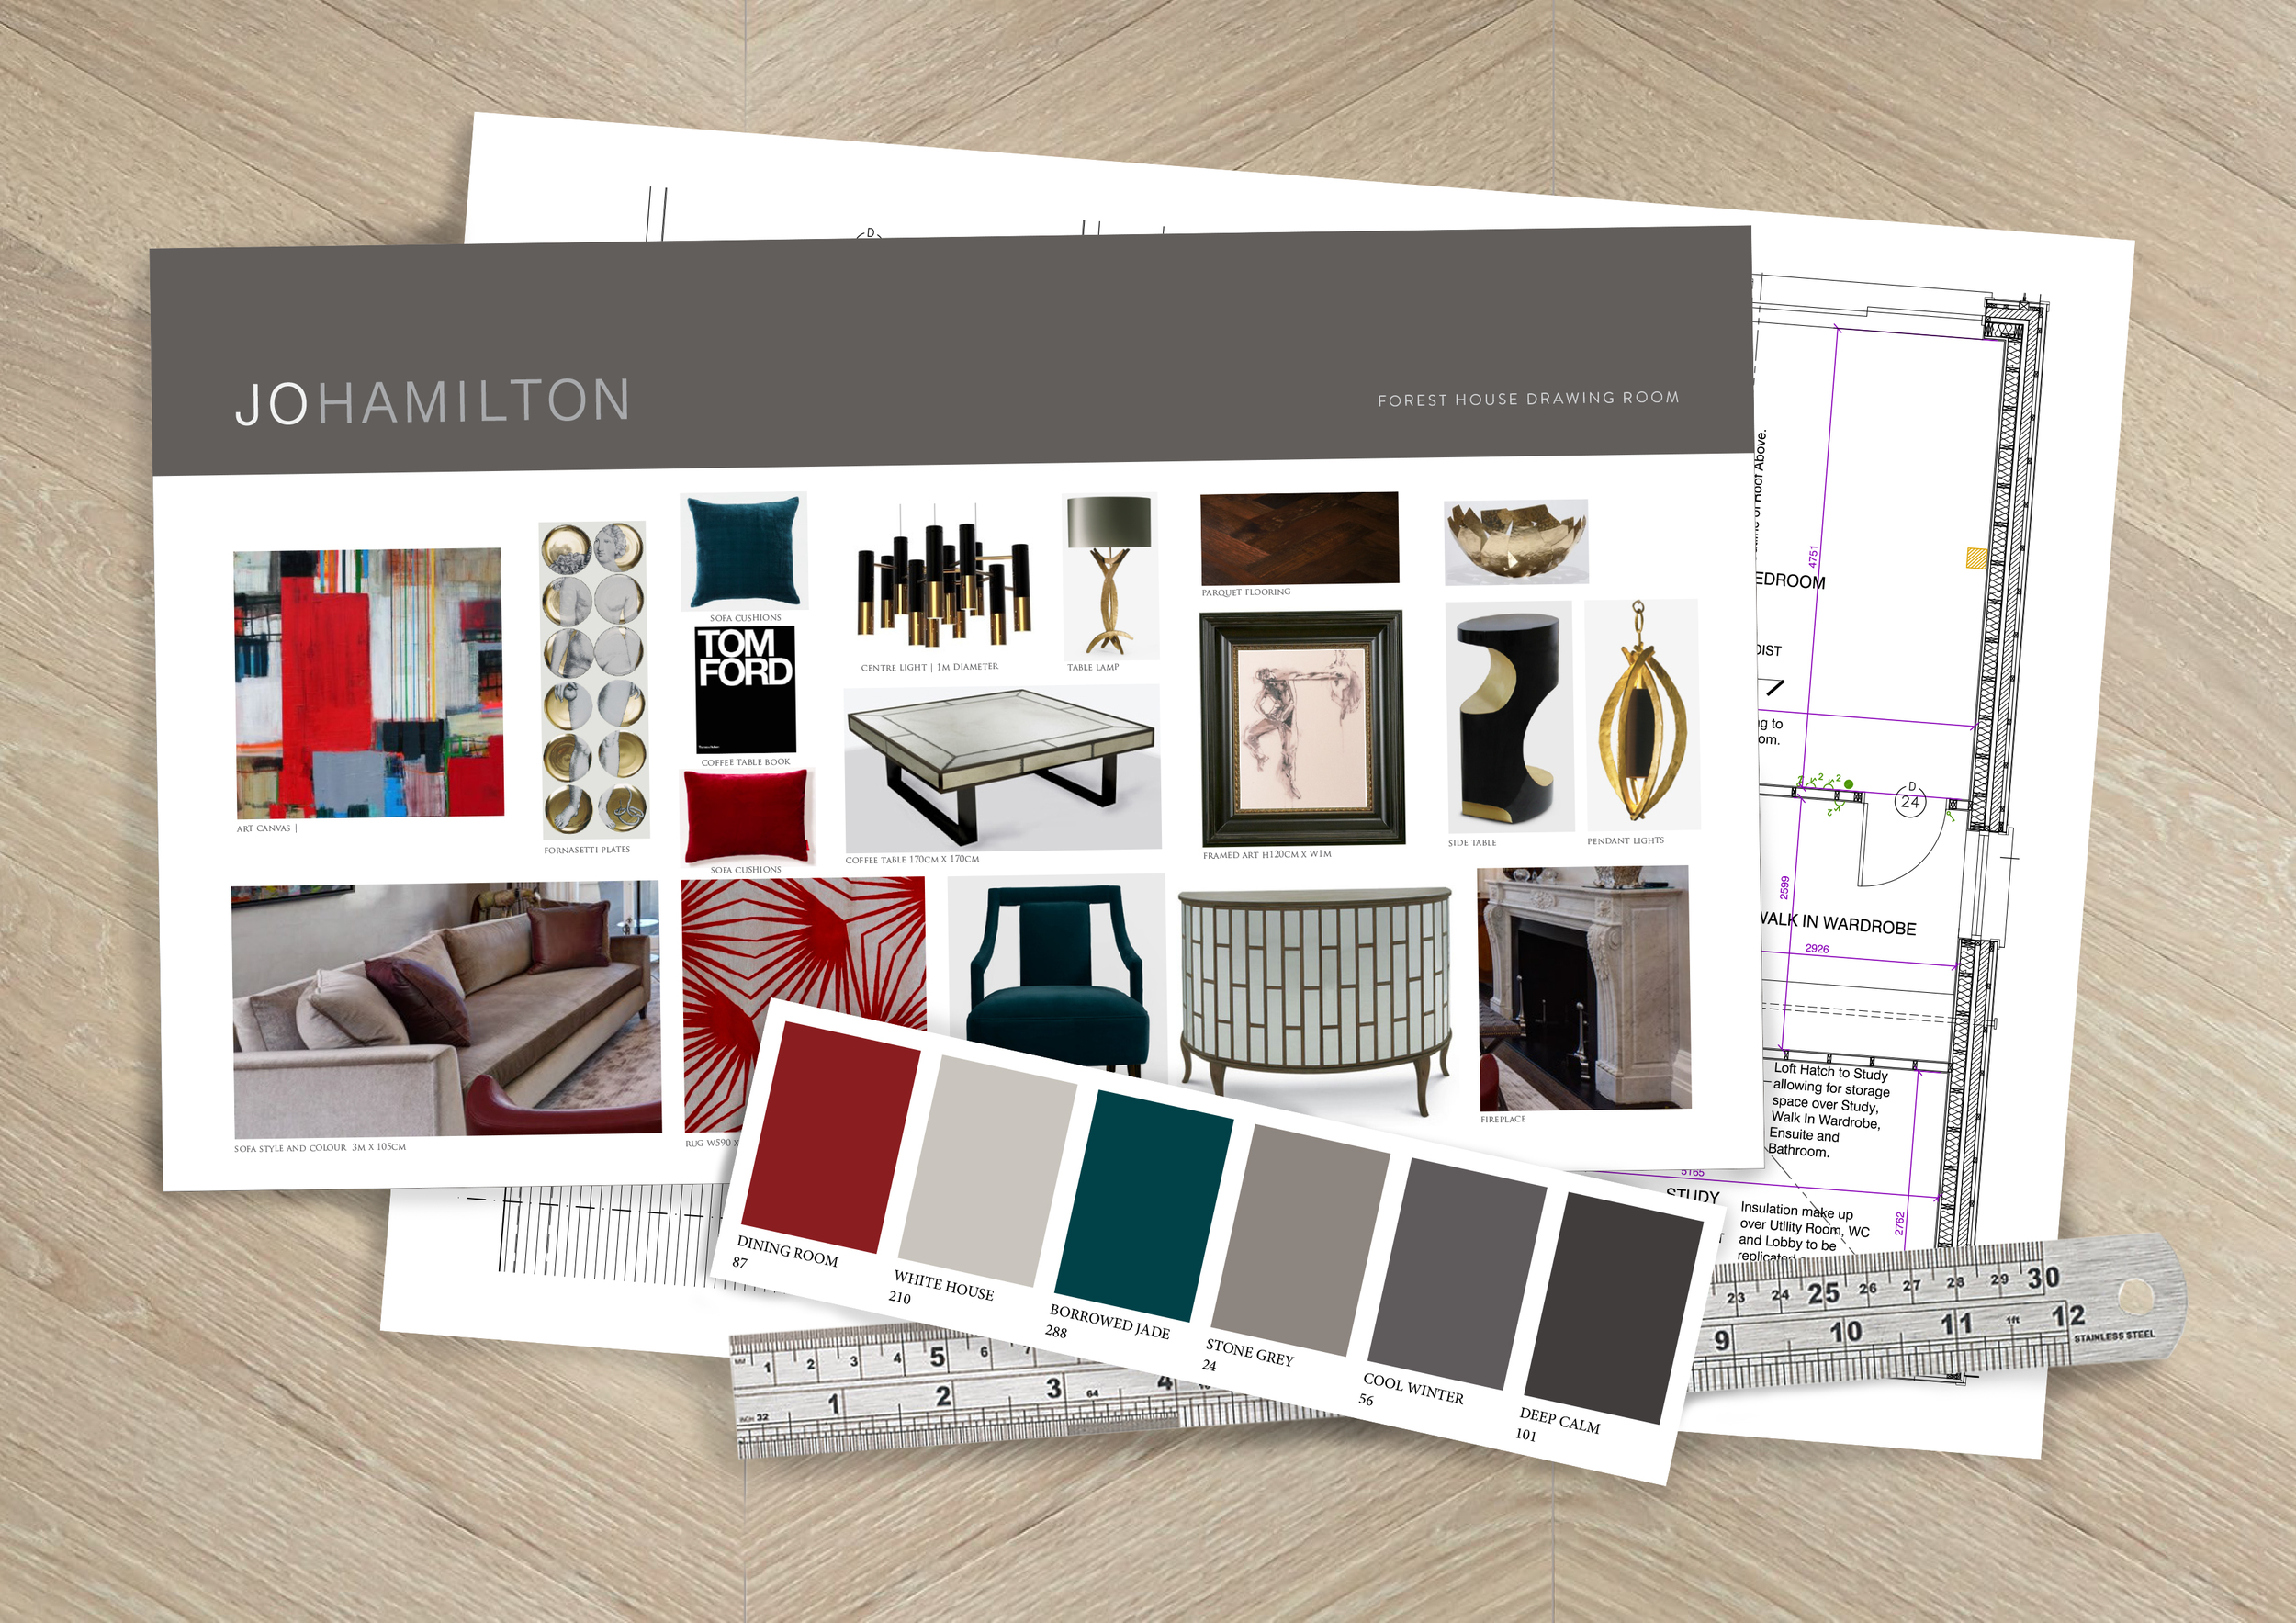 Interior design course by high-end London interior designer Jo Hamilton